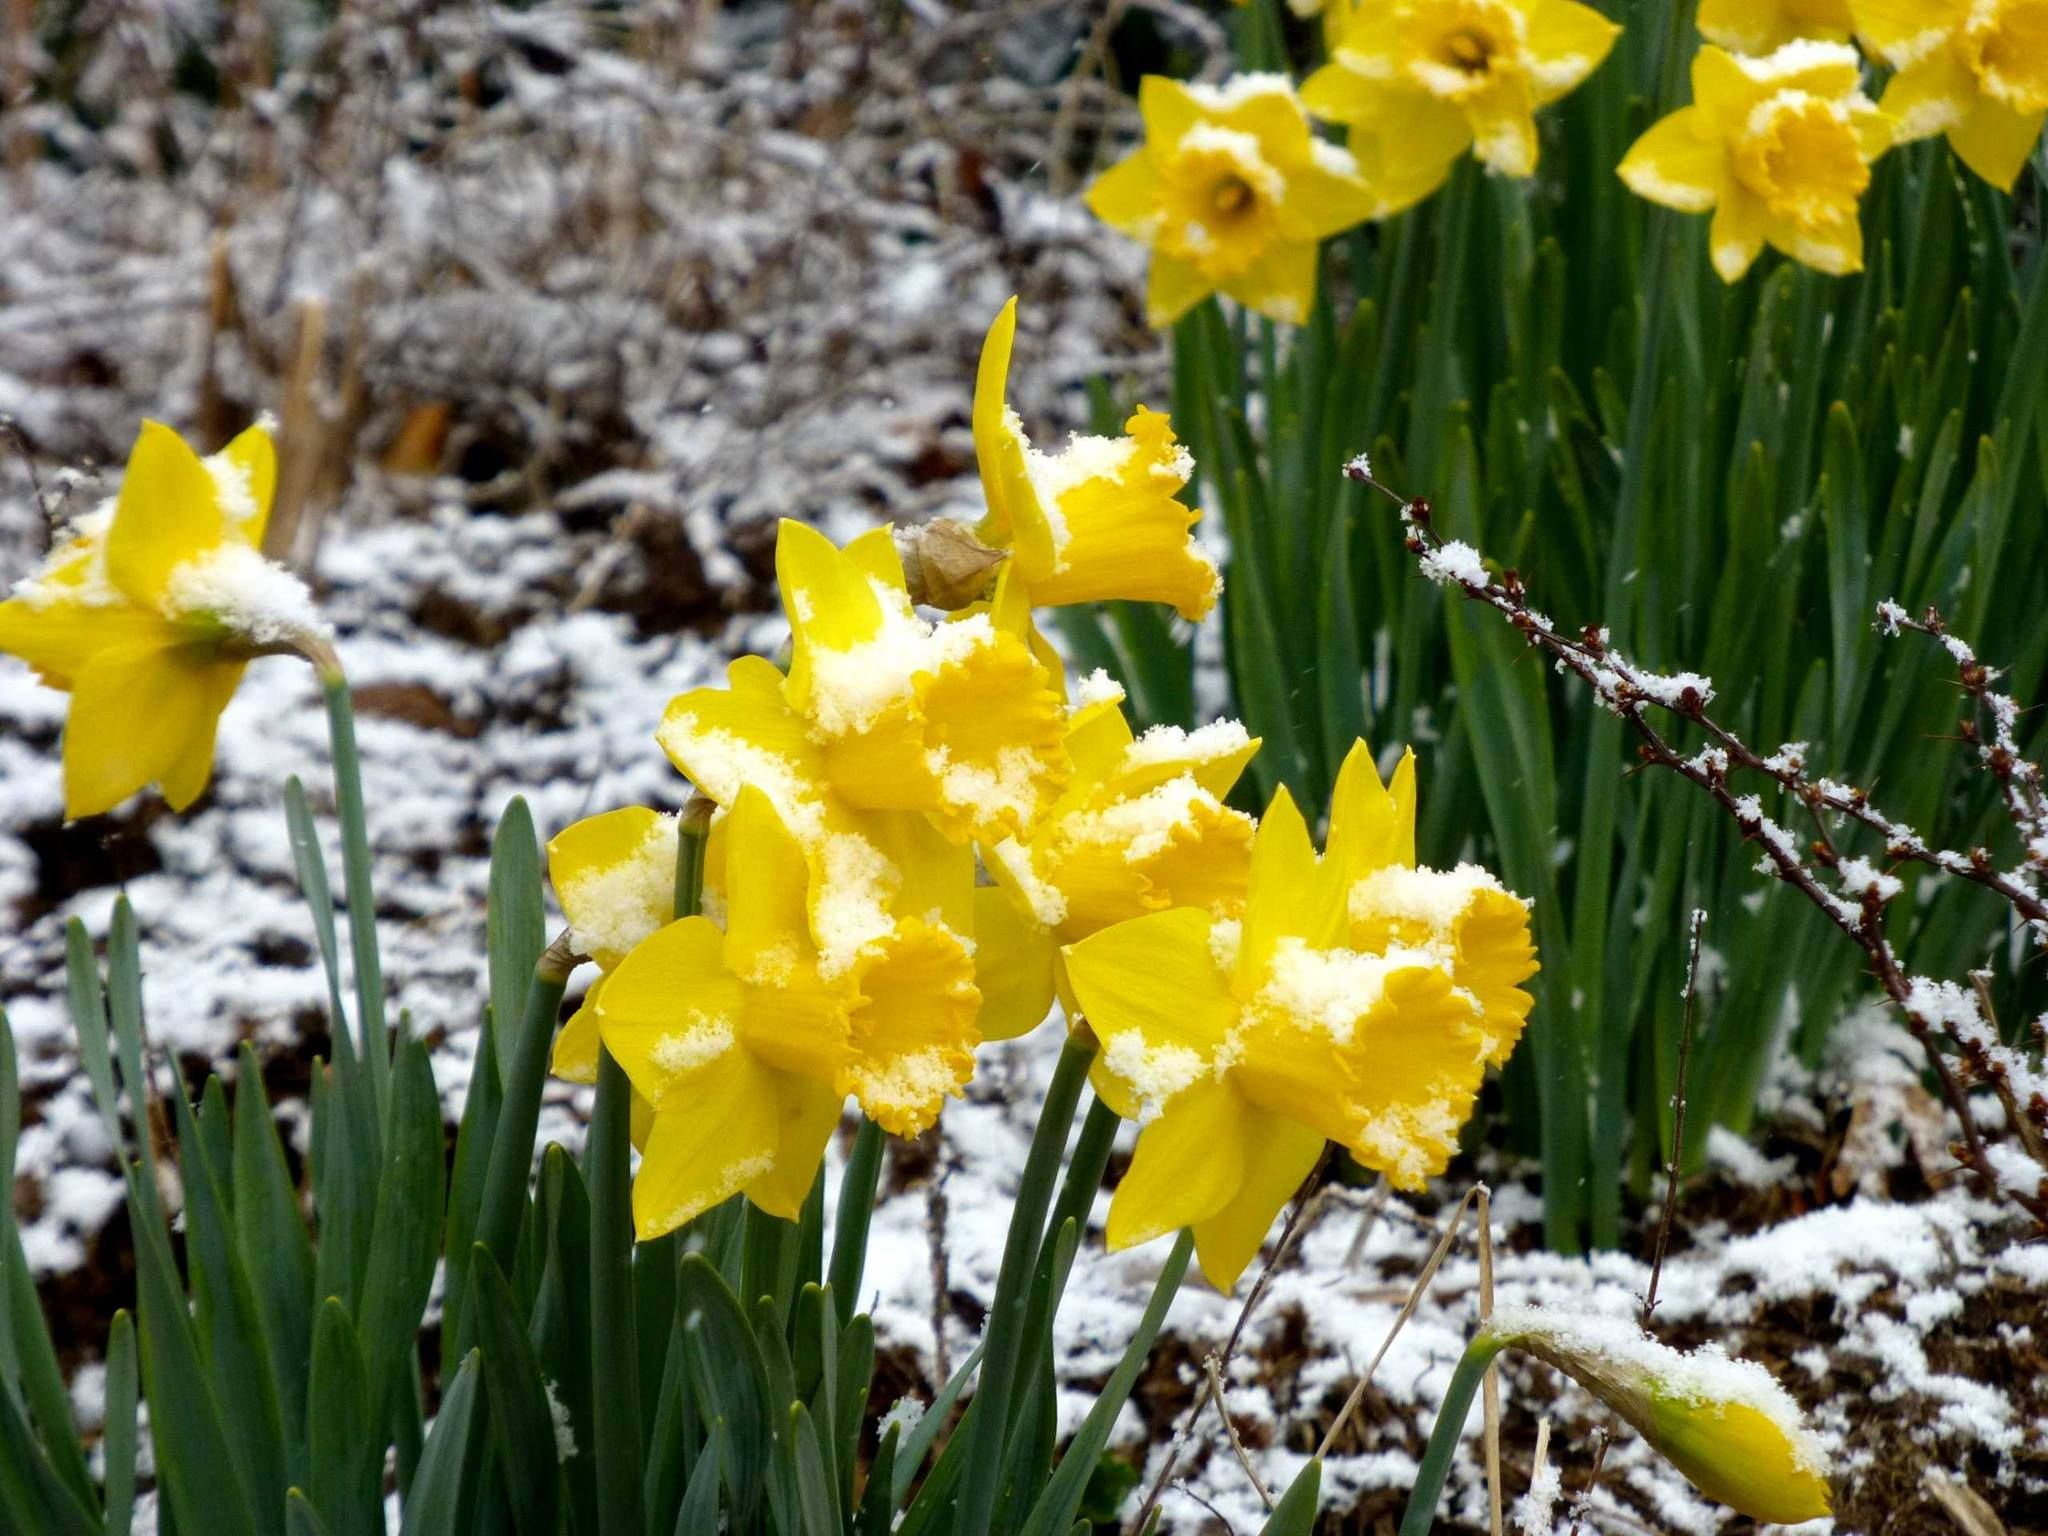 Sunshine snow flurries and spring bloomsjust another march day sunshine snow flurries and spring bloomsjust another march day in the north carolina mountainsspring flowersspring dhlflorist Image collections